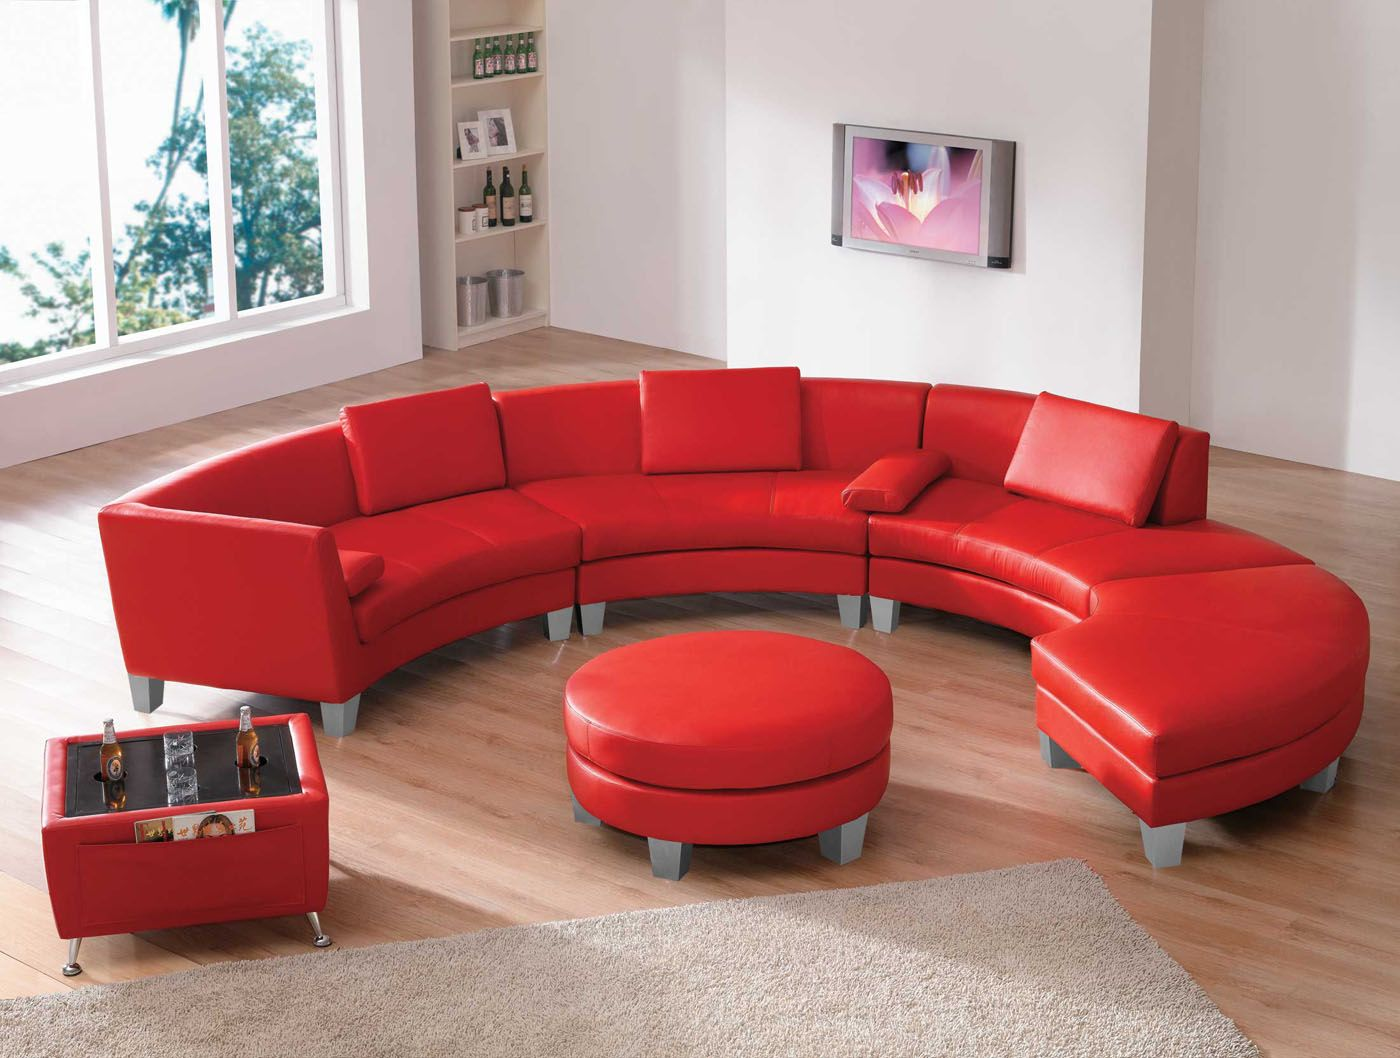 Leather sectional sofas amazing 2 in 1 modern for Red leather sectional sofa with ottoman